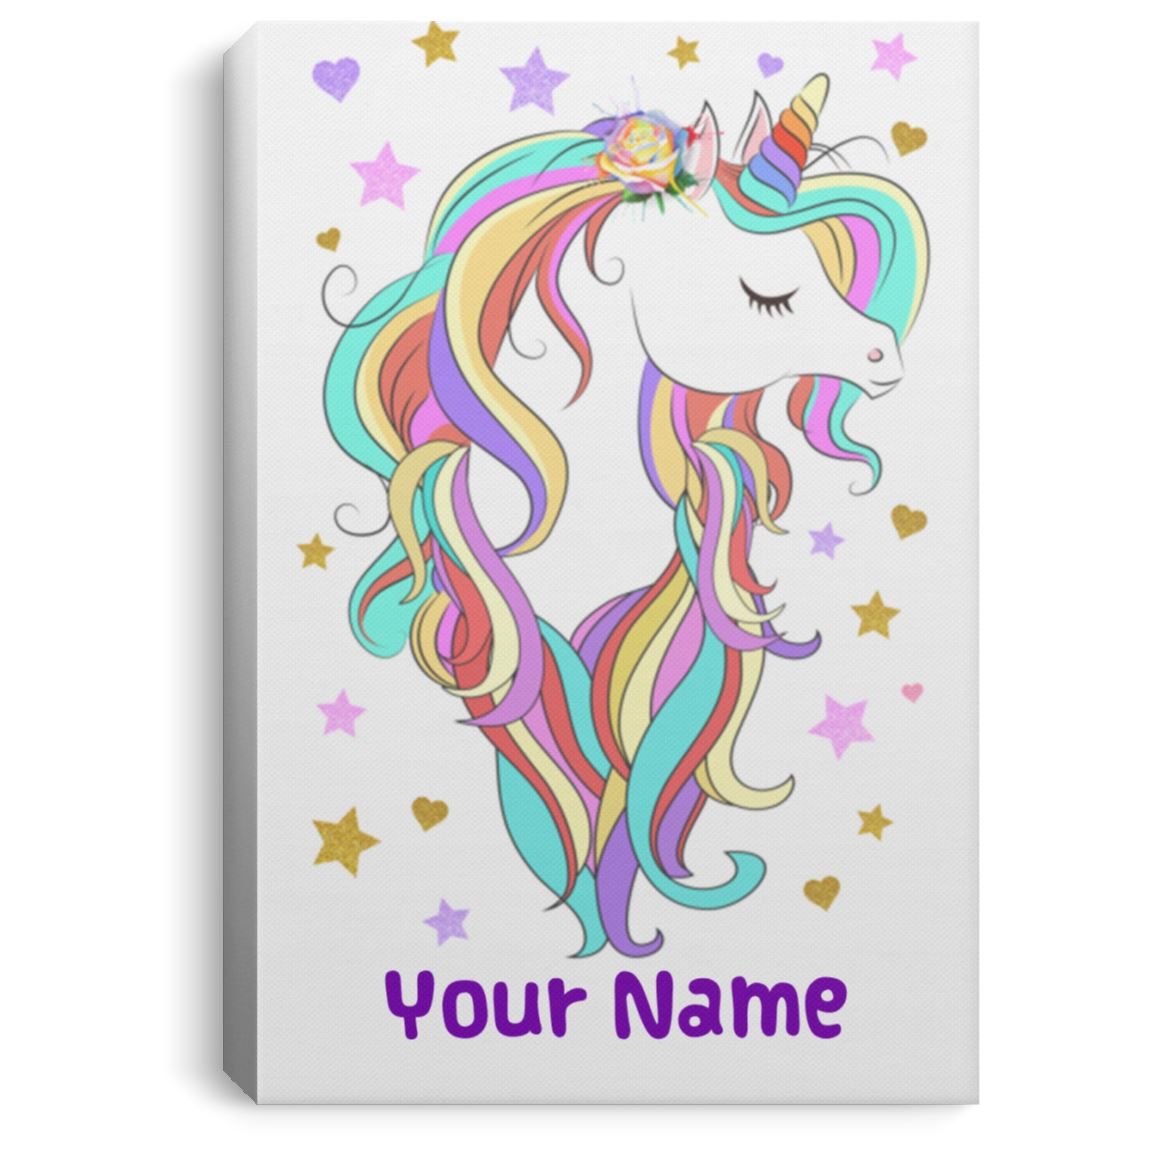 Personalized Unicorn Portrait Art Canvas Home Decor 8 x 12